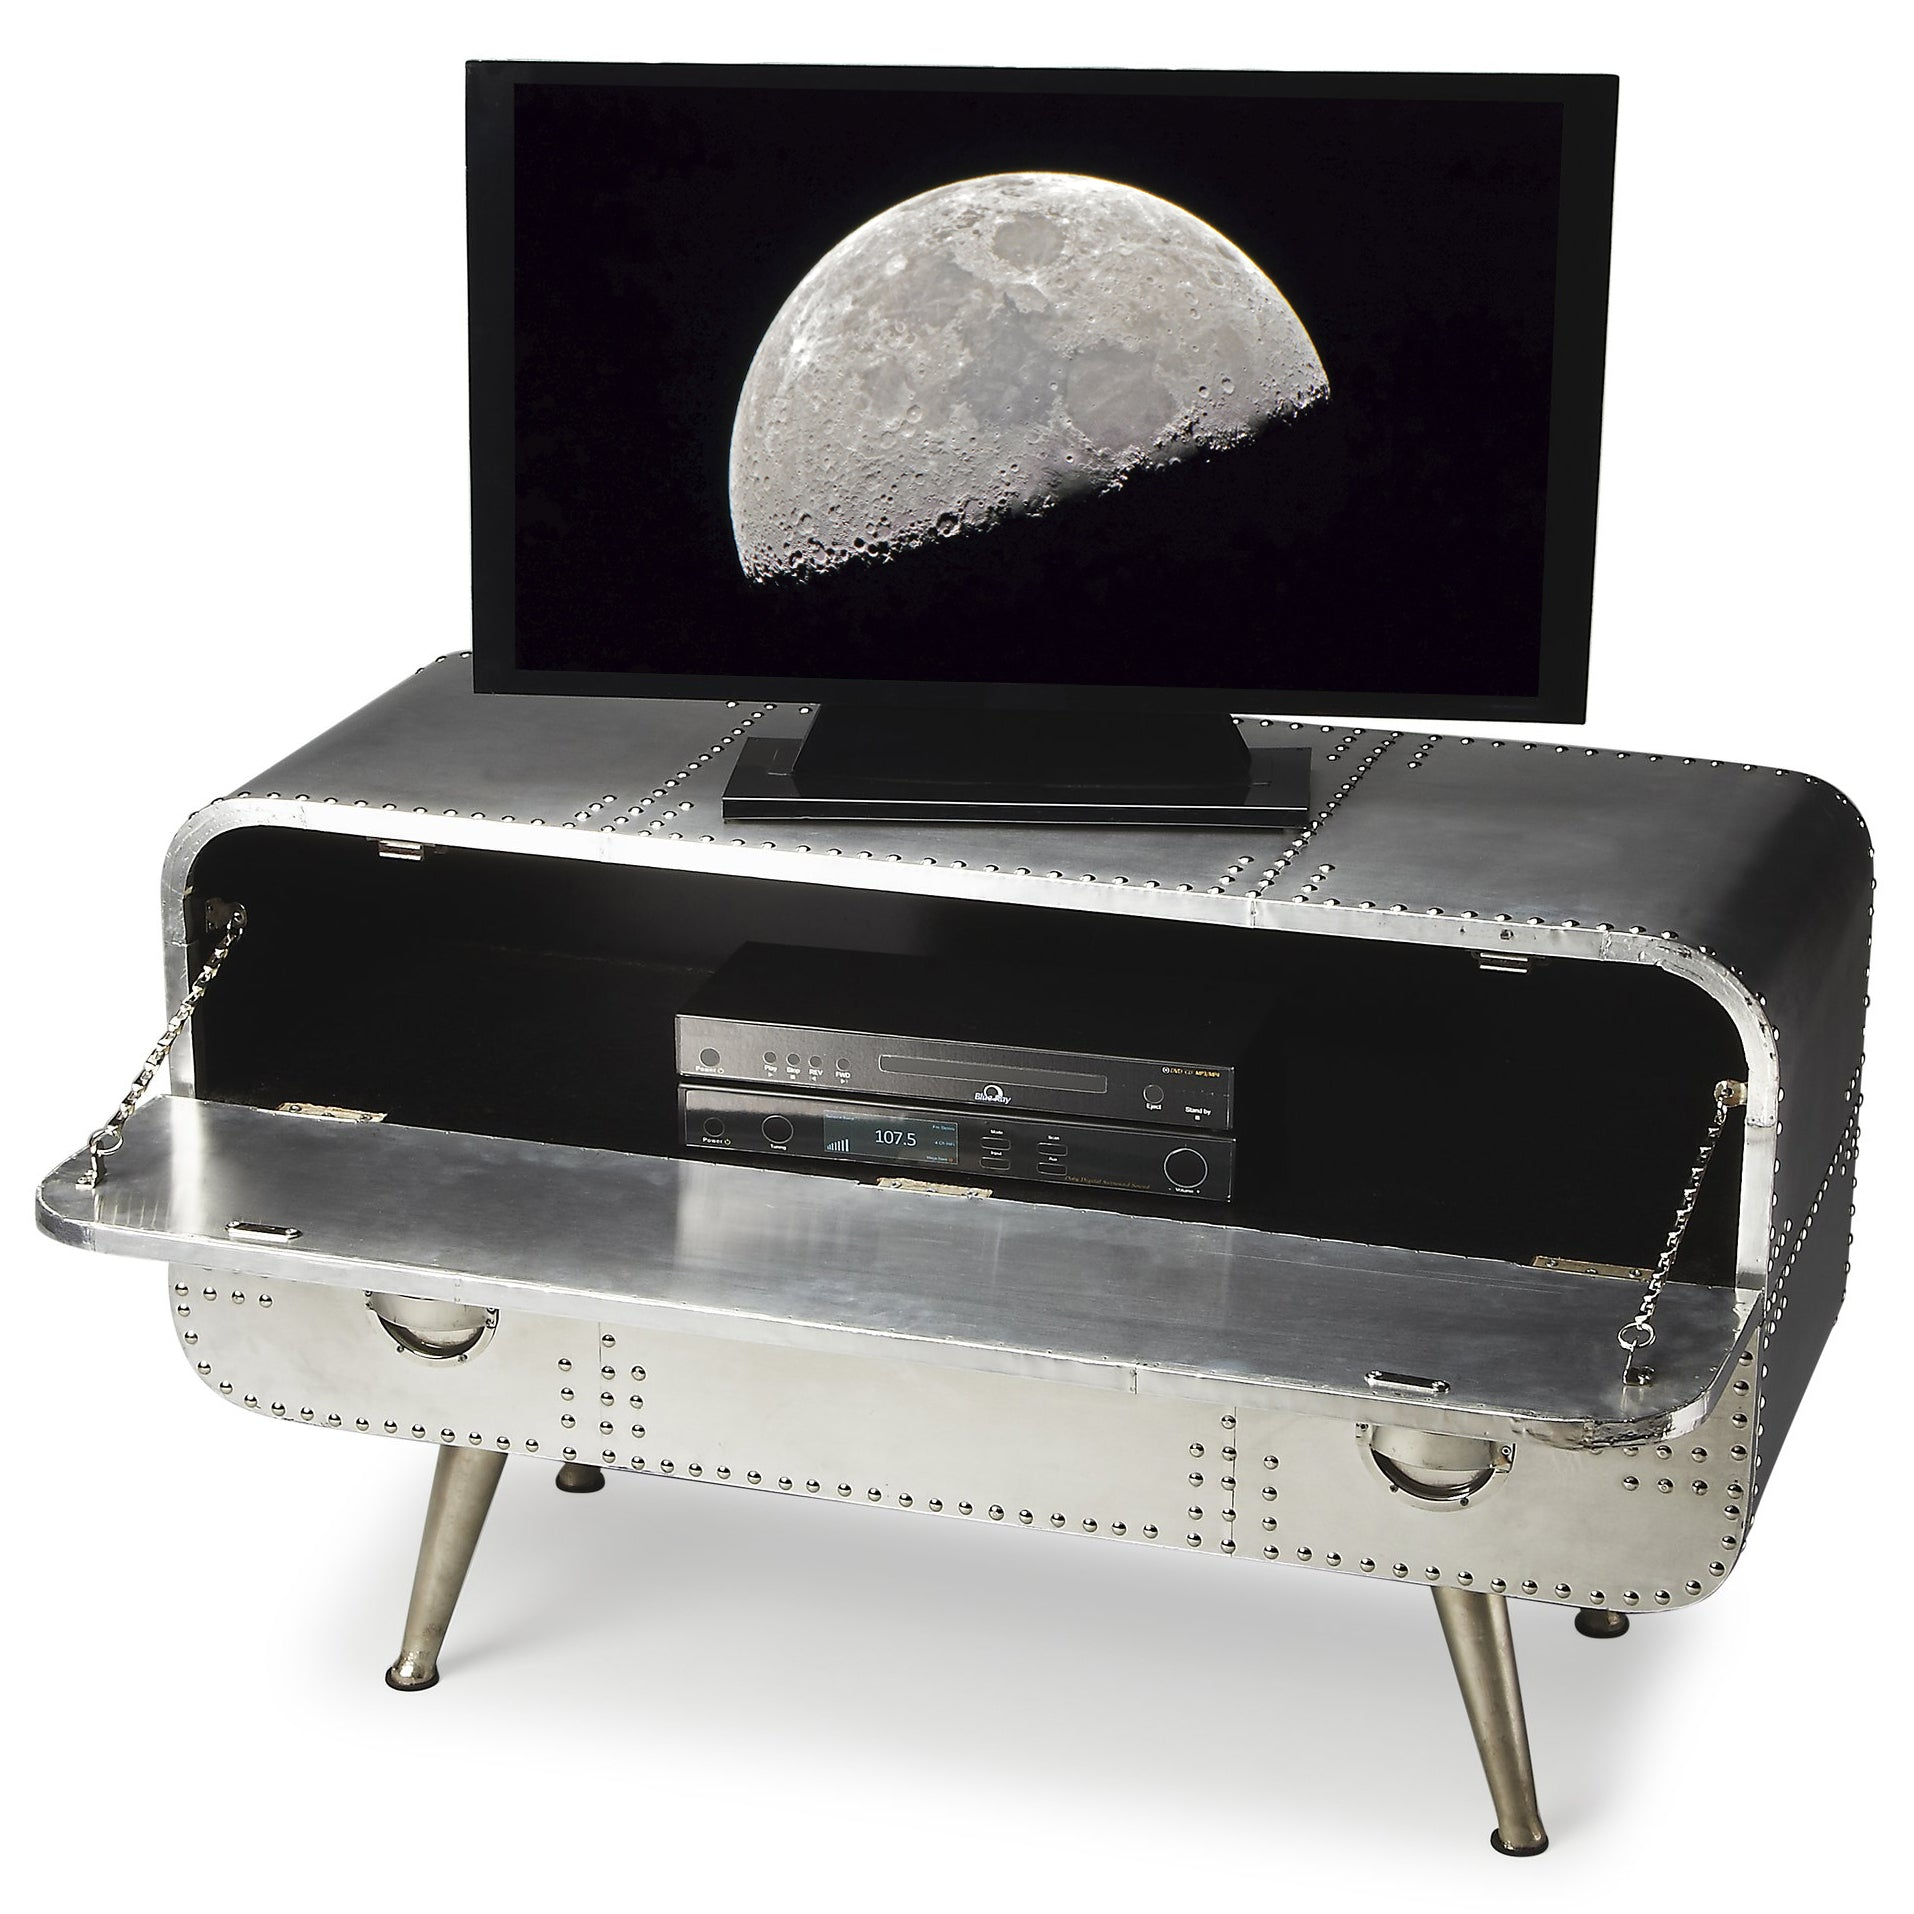 Silver Finish Riveted Aluminum Console Airplane Spacecraft Style TV Stand